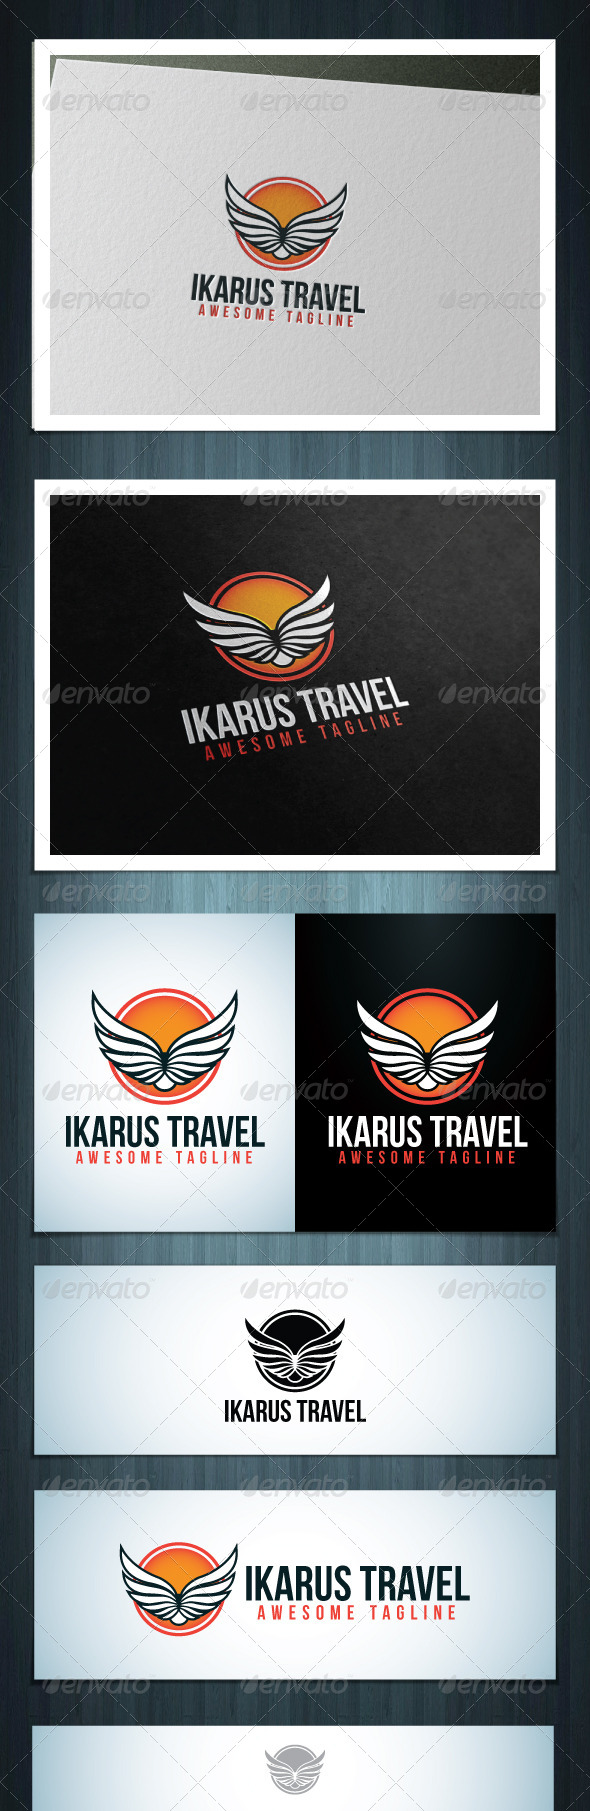 GraphicRiver Ikarus Travel 7638432